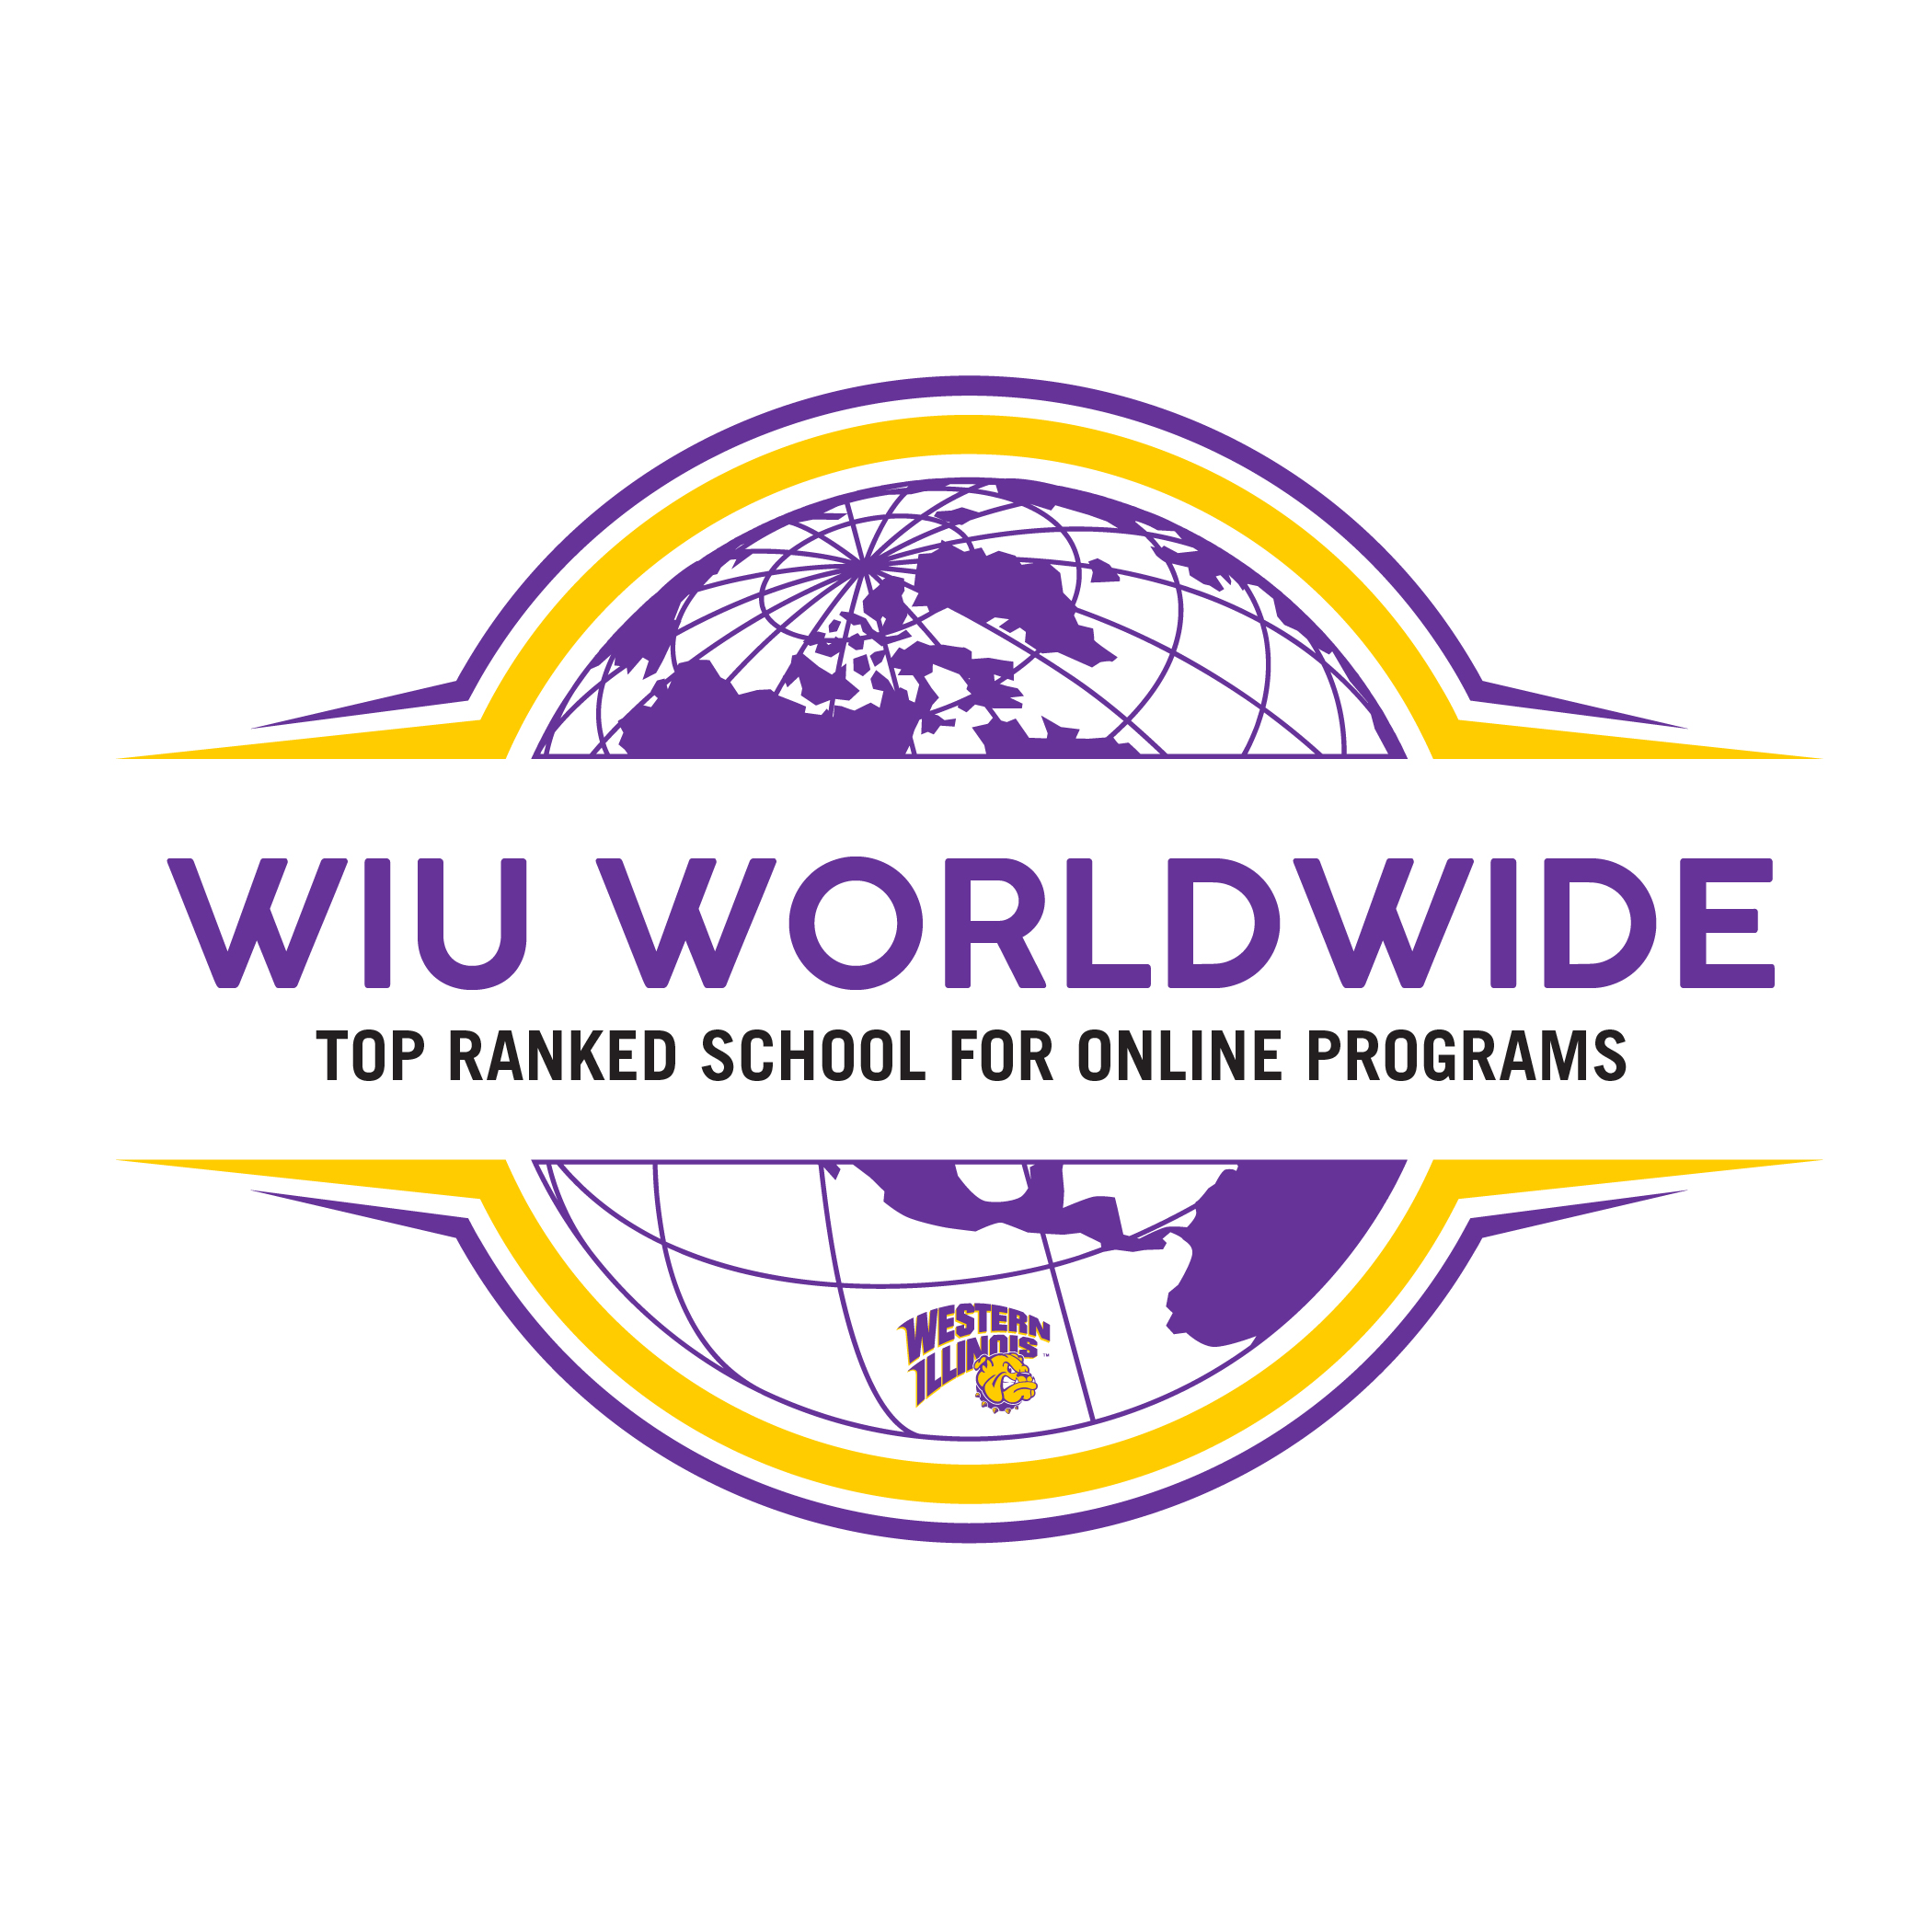 WIU Worldwide, Top Ranked School for Online Programs